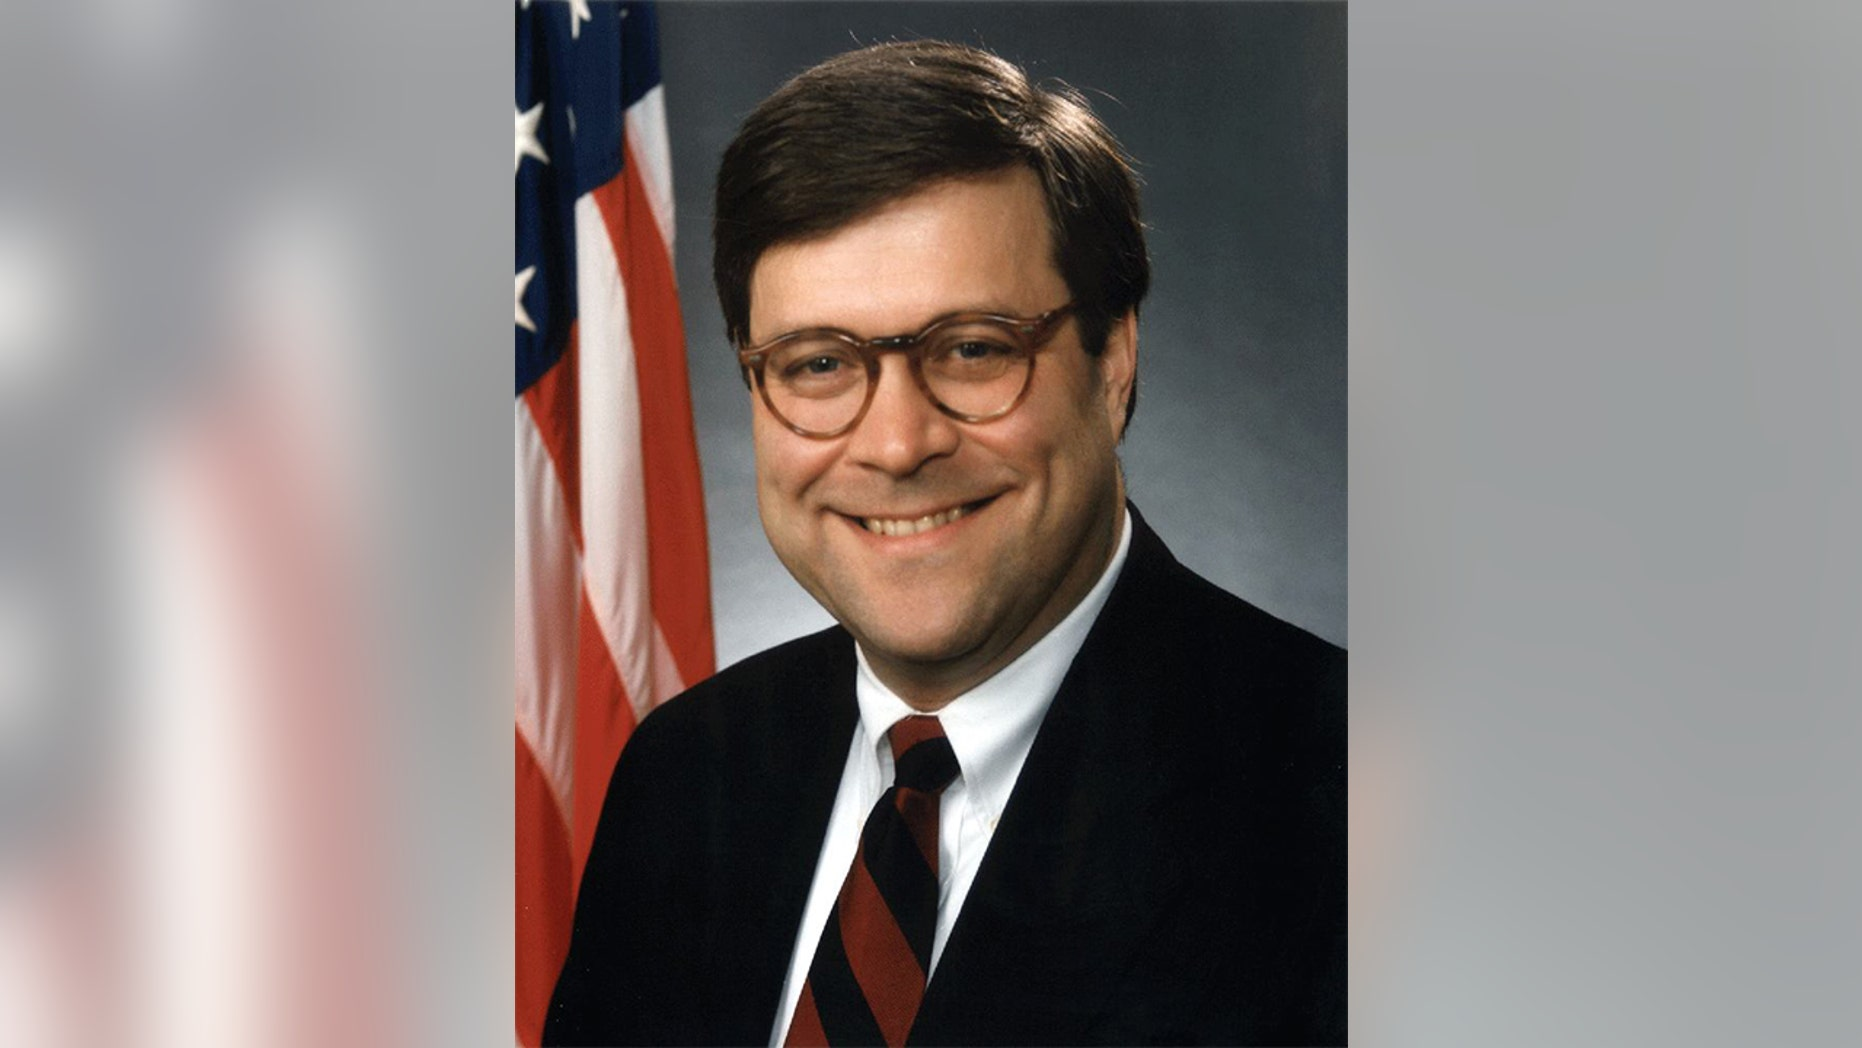 President Trump could pick William Barr, who has already led the Justice Department, as his next attorney general.